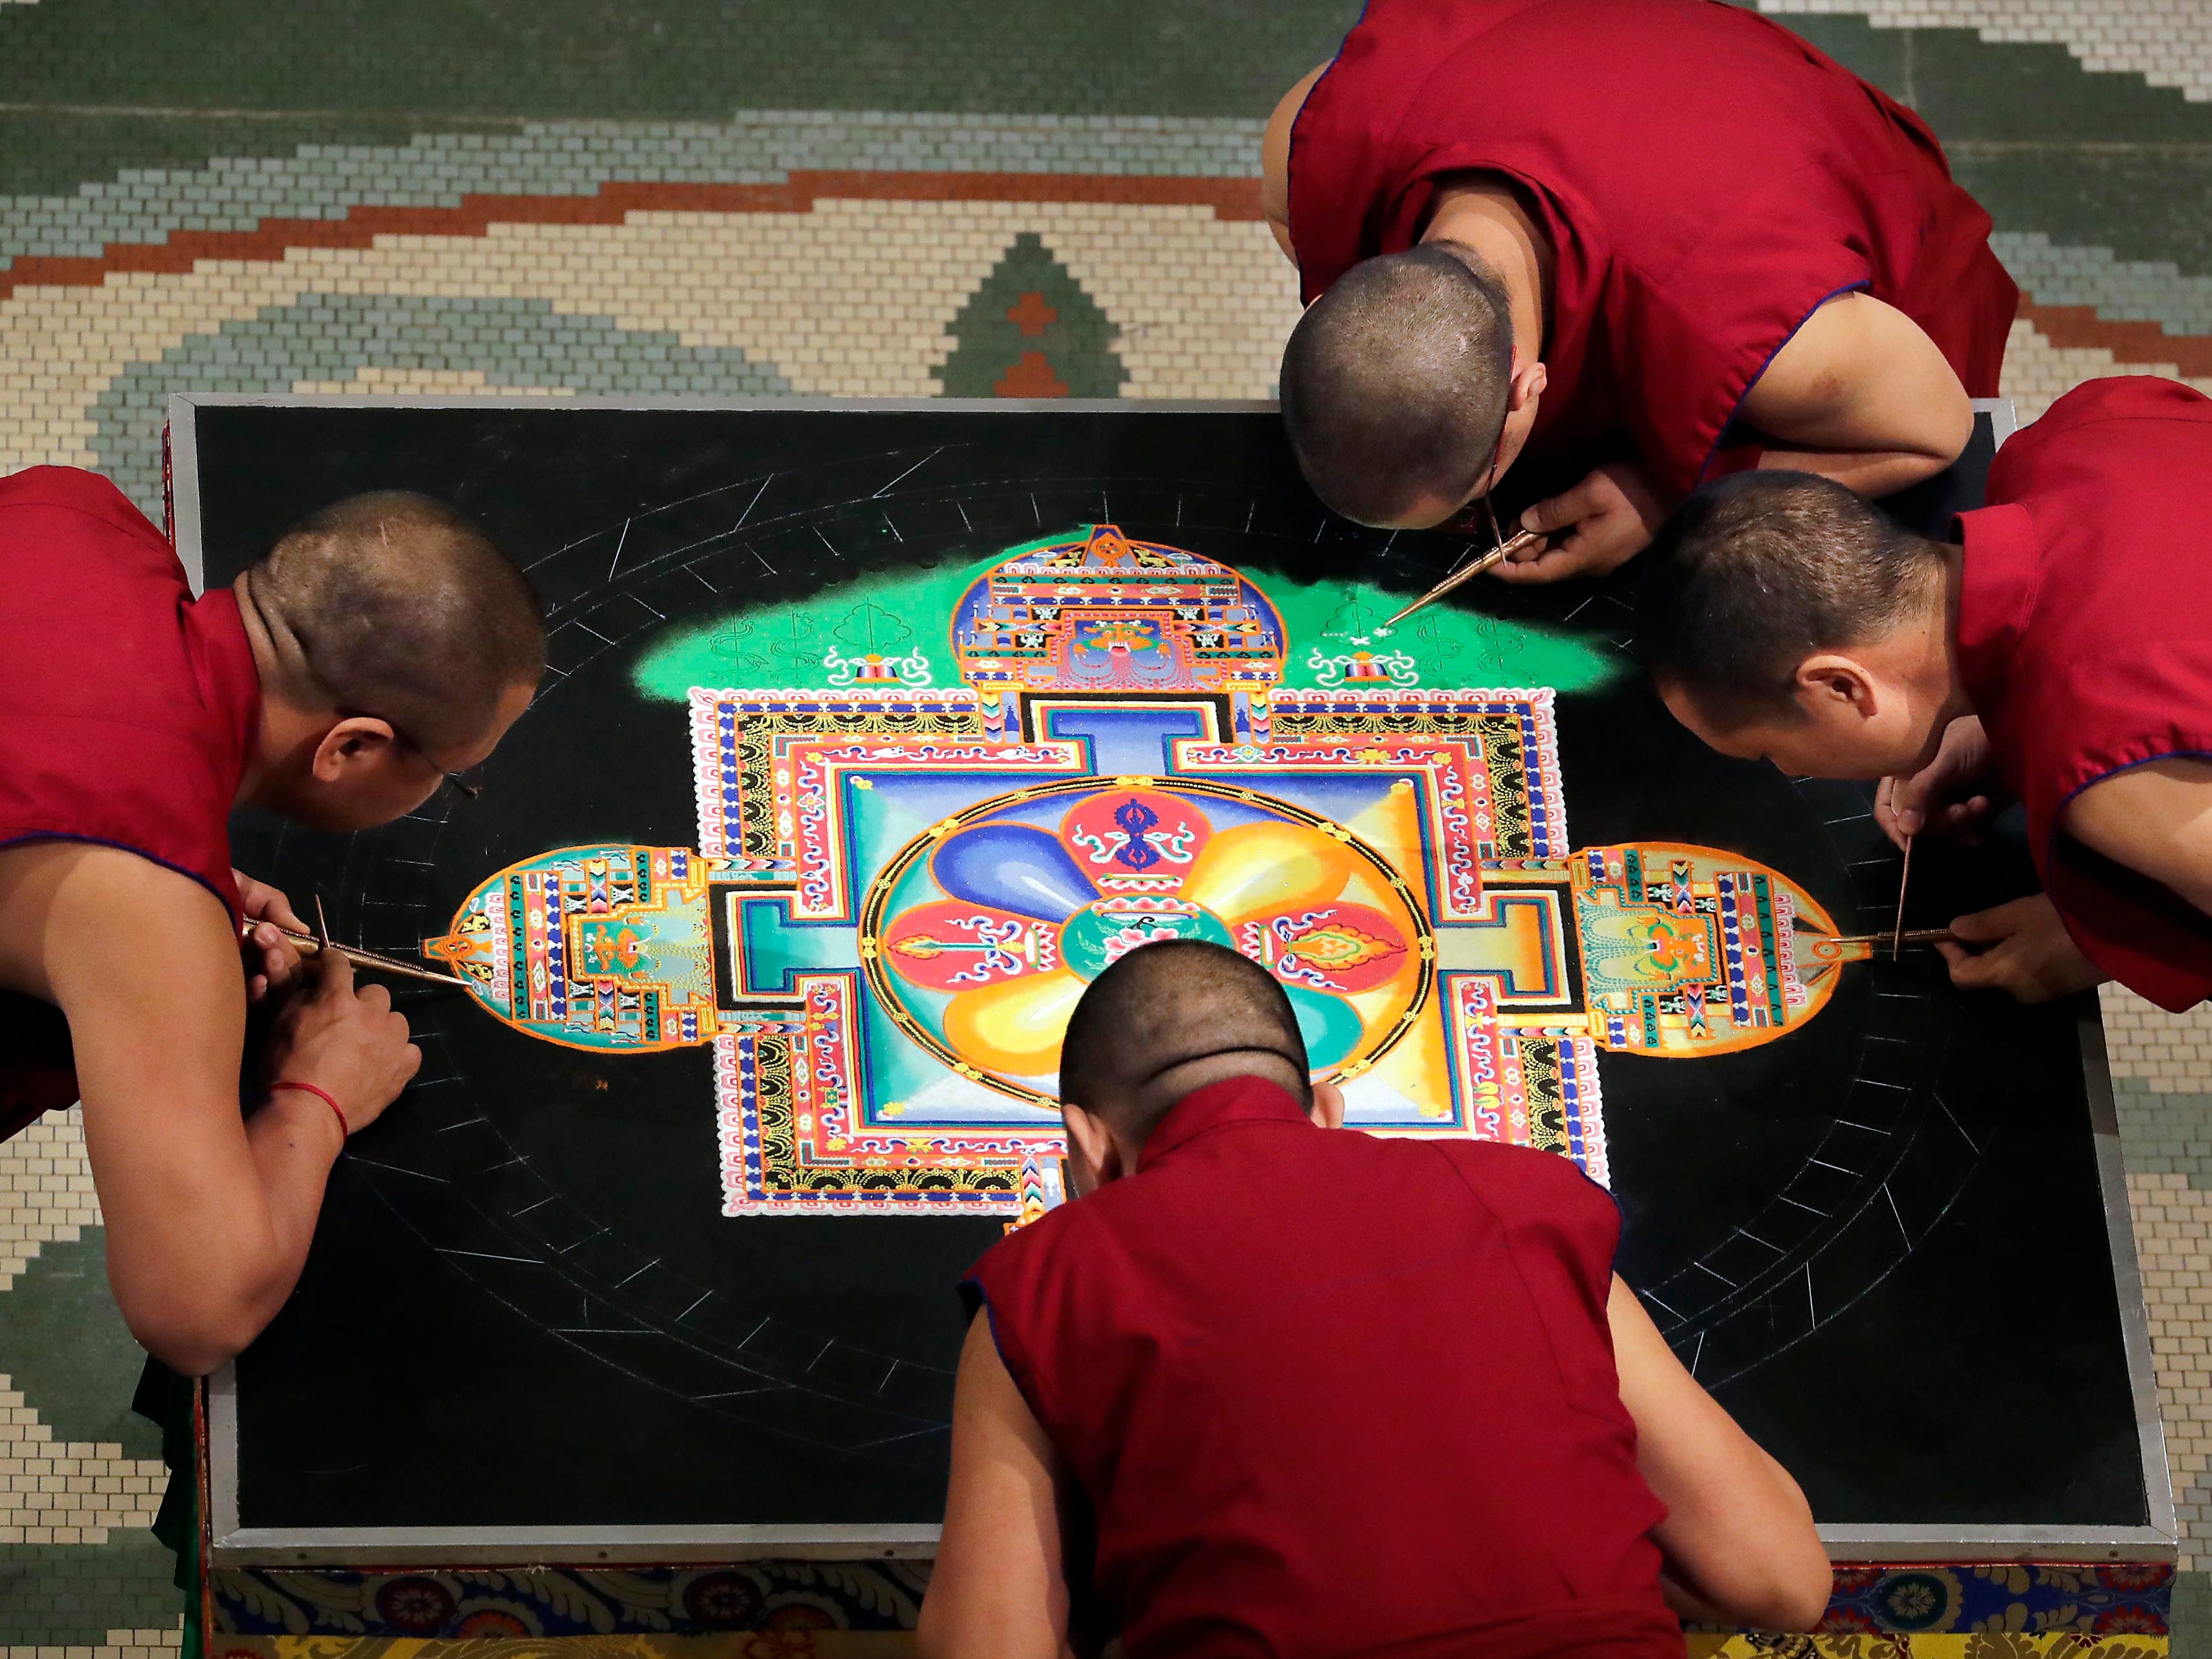 """Buddhist monks from the Drepung Loseling Monastery, mix bowls of colorful sand and use funnels to apply the sand and create a  sand mandala in the center of Milwaukee's City Hall, Thursday, April 11, 2019.   The mandala represents the world in its divine form; on the inner level, they represent a map by which the ordinary human mind is transformed into enlightened mind; and on the secret level, they depict the primordially perfect balance of the subtle energies of the body and the clear light dimension of the mind. The creation of a sand painting is said to effect purification and healing on these three levels.  The display ends with a closing ceremony Friday at 5 p.m. where the sand """"painting"""" will be destroyed and vials of sand shared with attendees. For more information go to www.earlymusicnow.org"""